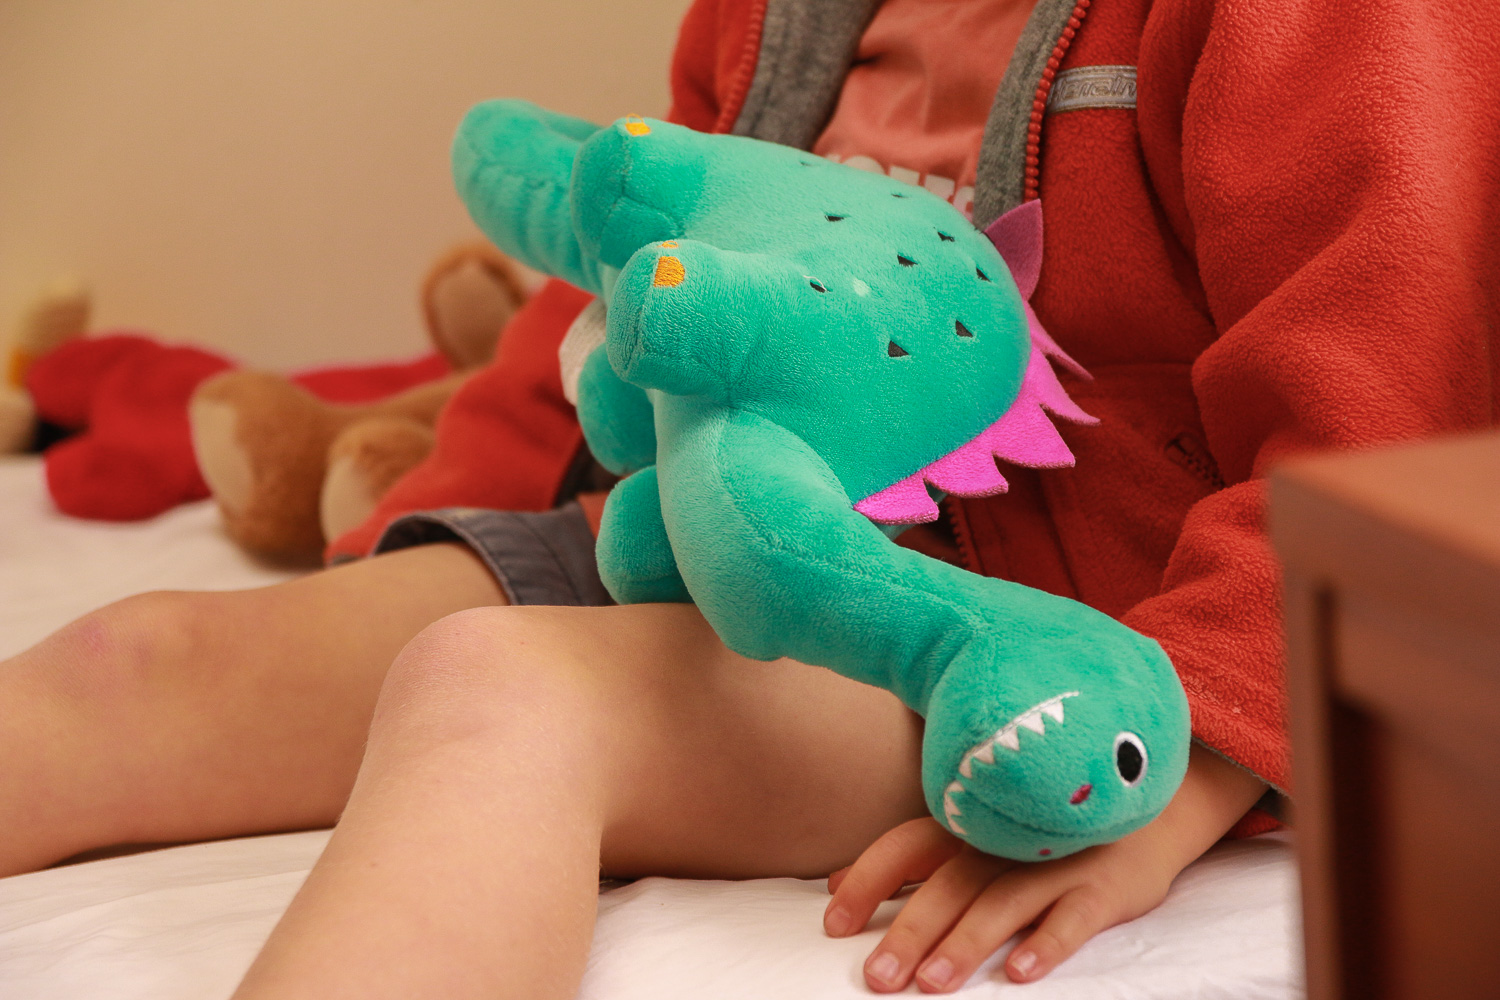 little-boy-wearing-red-holding-dinosaur-toy.jpg